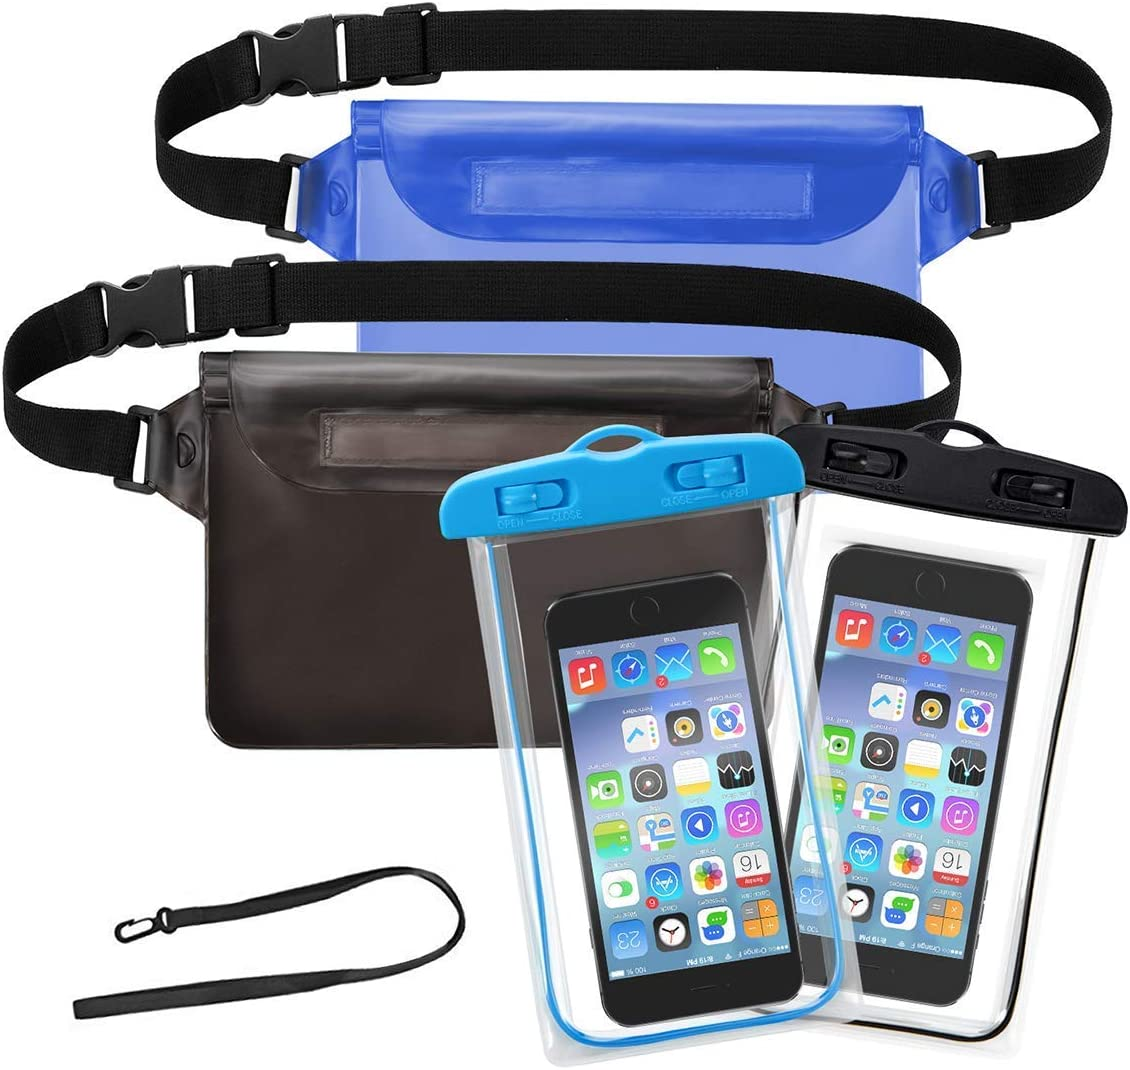 Followyt Waterproof Cell Phone Bag 2 Pack Waterproof Waist Pouch And 2 Pack Waterproof Phone Case Dry Bags For Boating Swimming Kayaking Beach Pool Water Parks Keeping Phone Wallet Safe And Dry Sports Outdoors Amazon Com